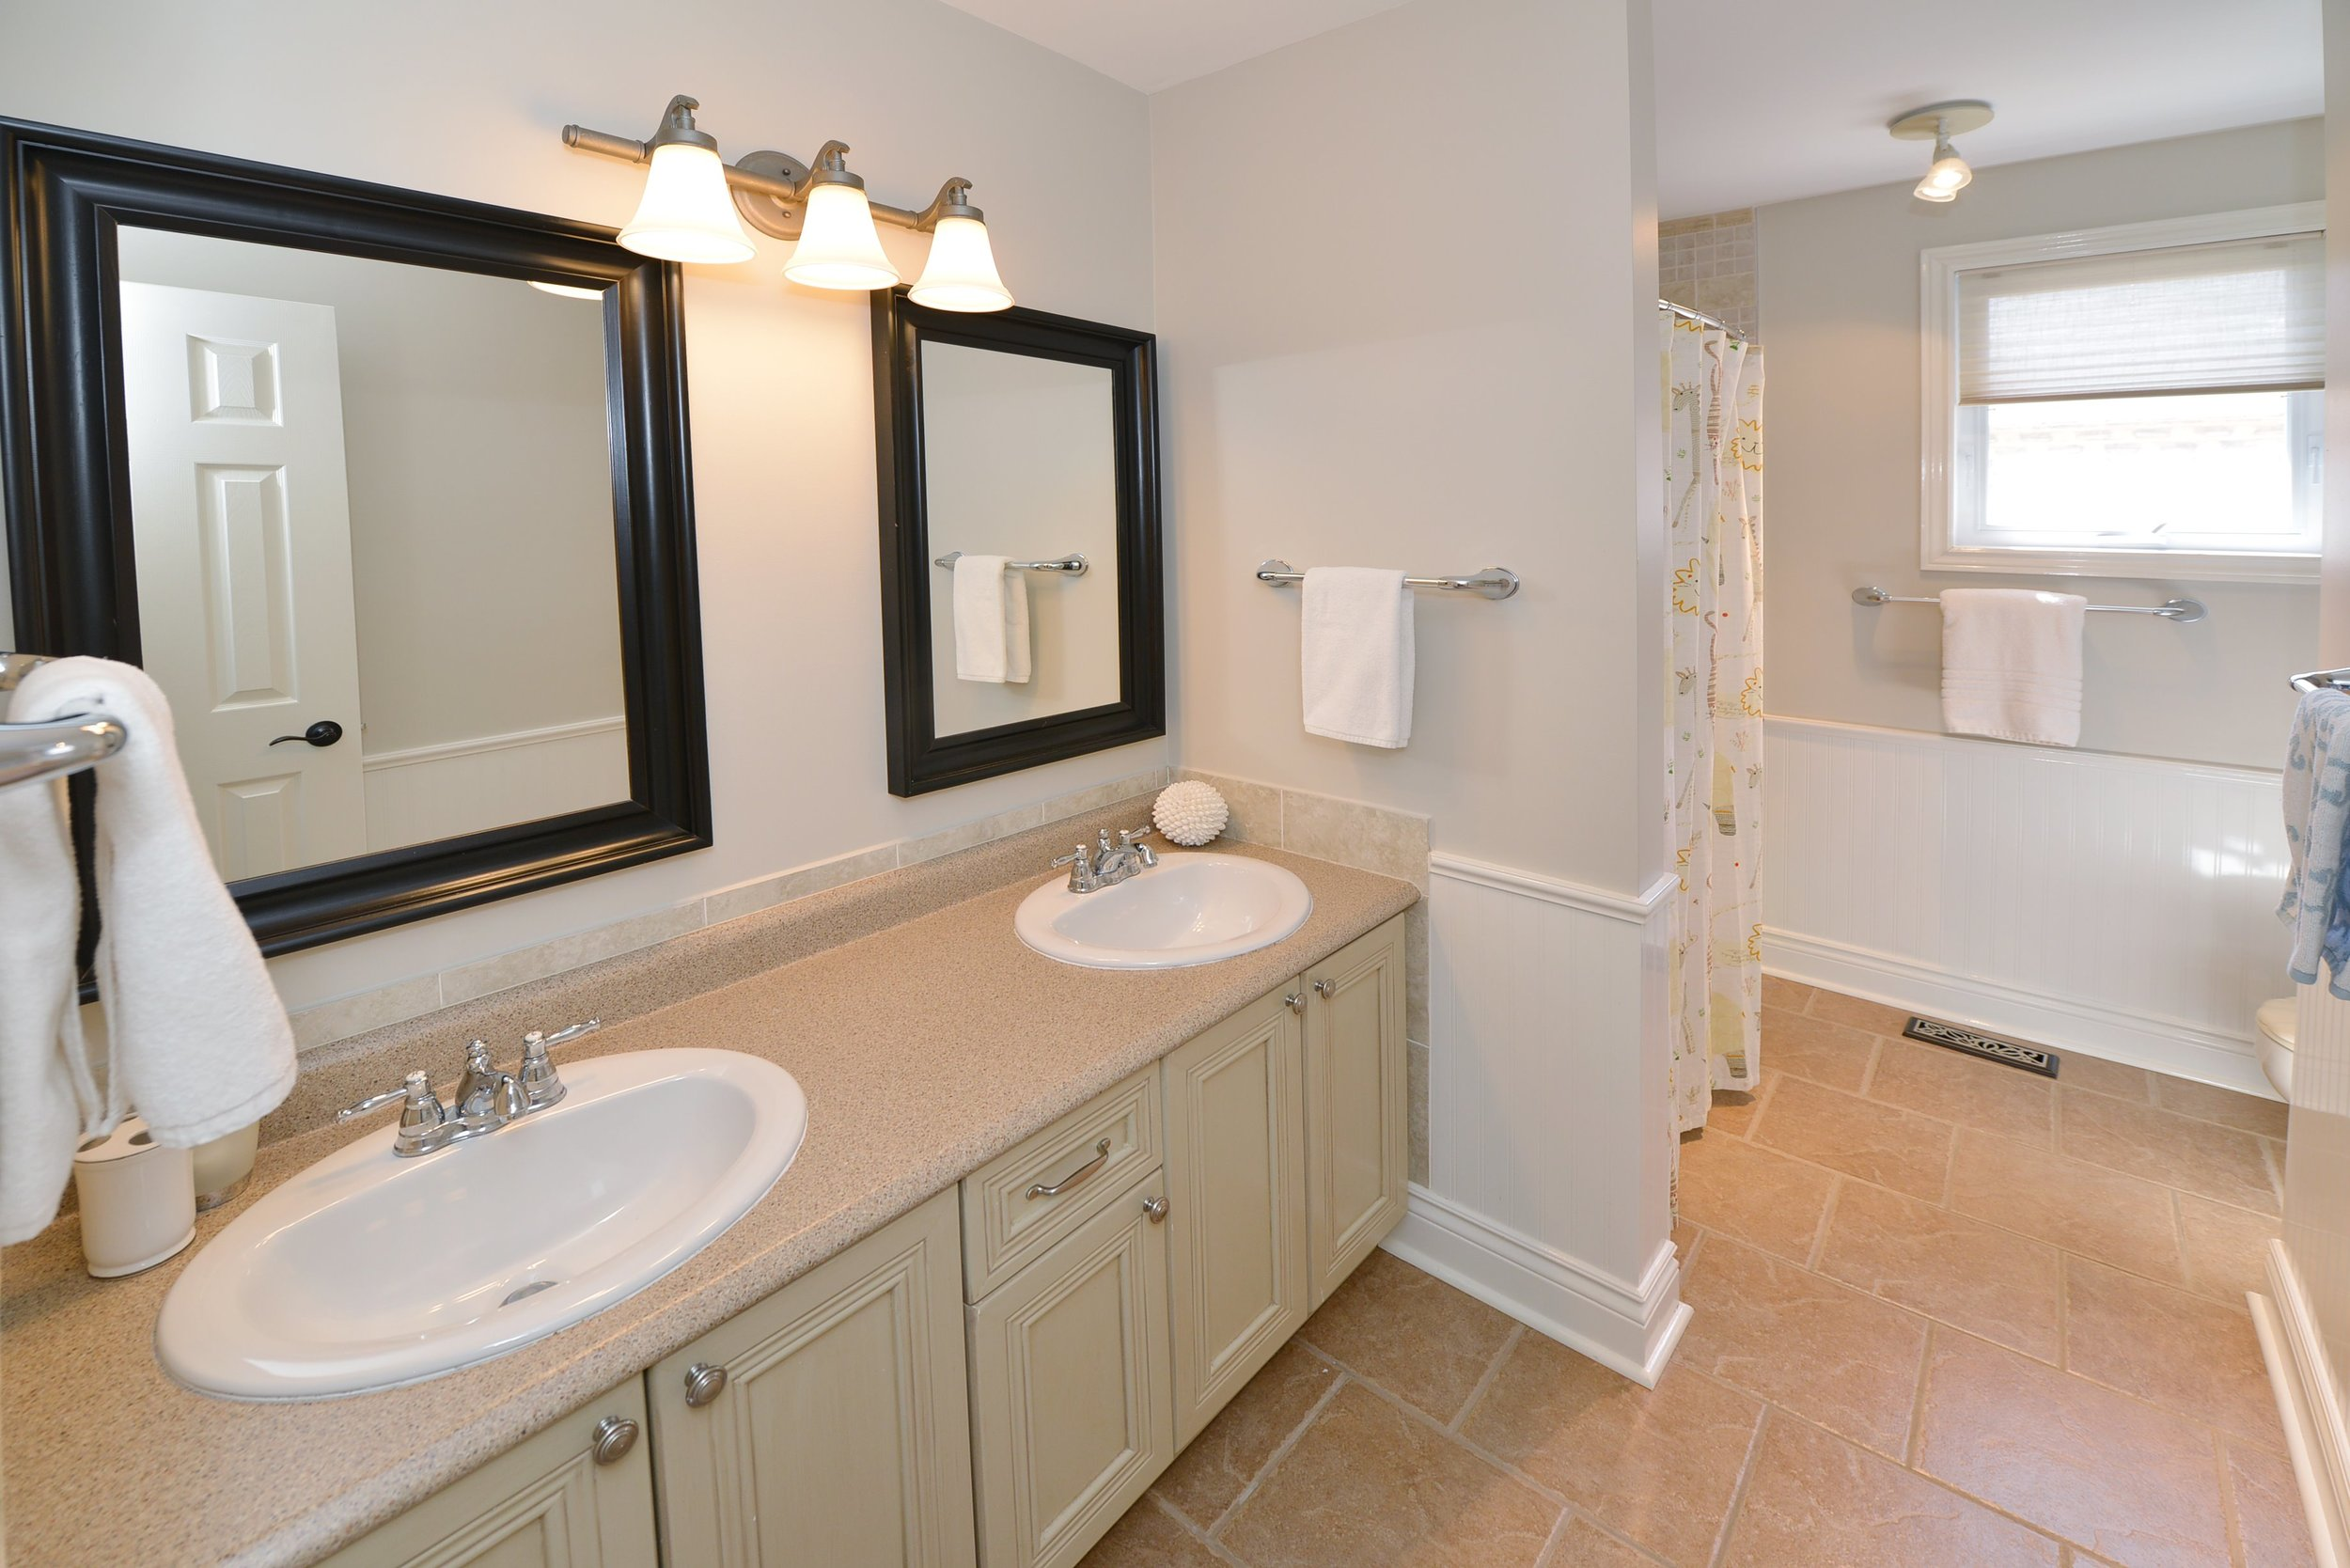 2767_guilford_crescent_MLS30538562_HID1121270_ROOMbathroom.jpg